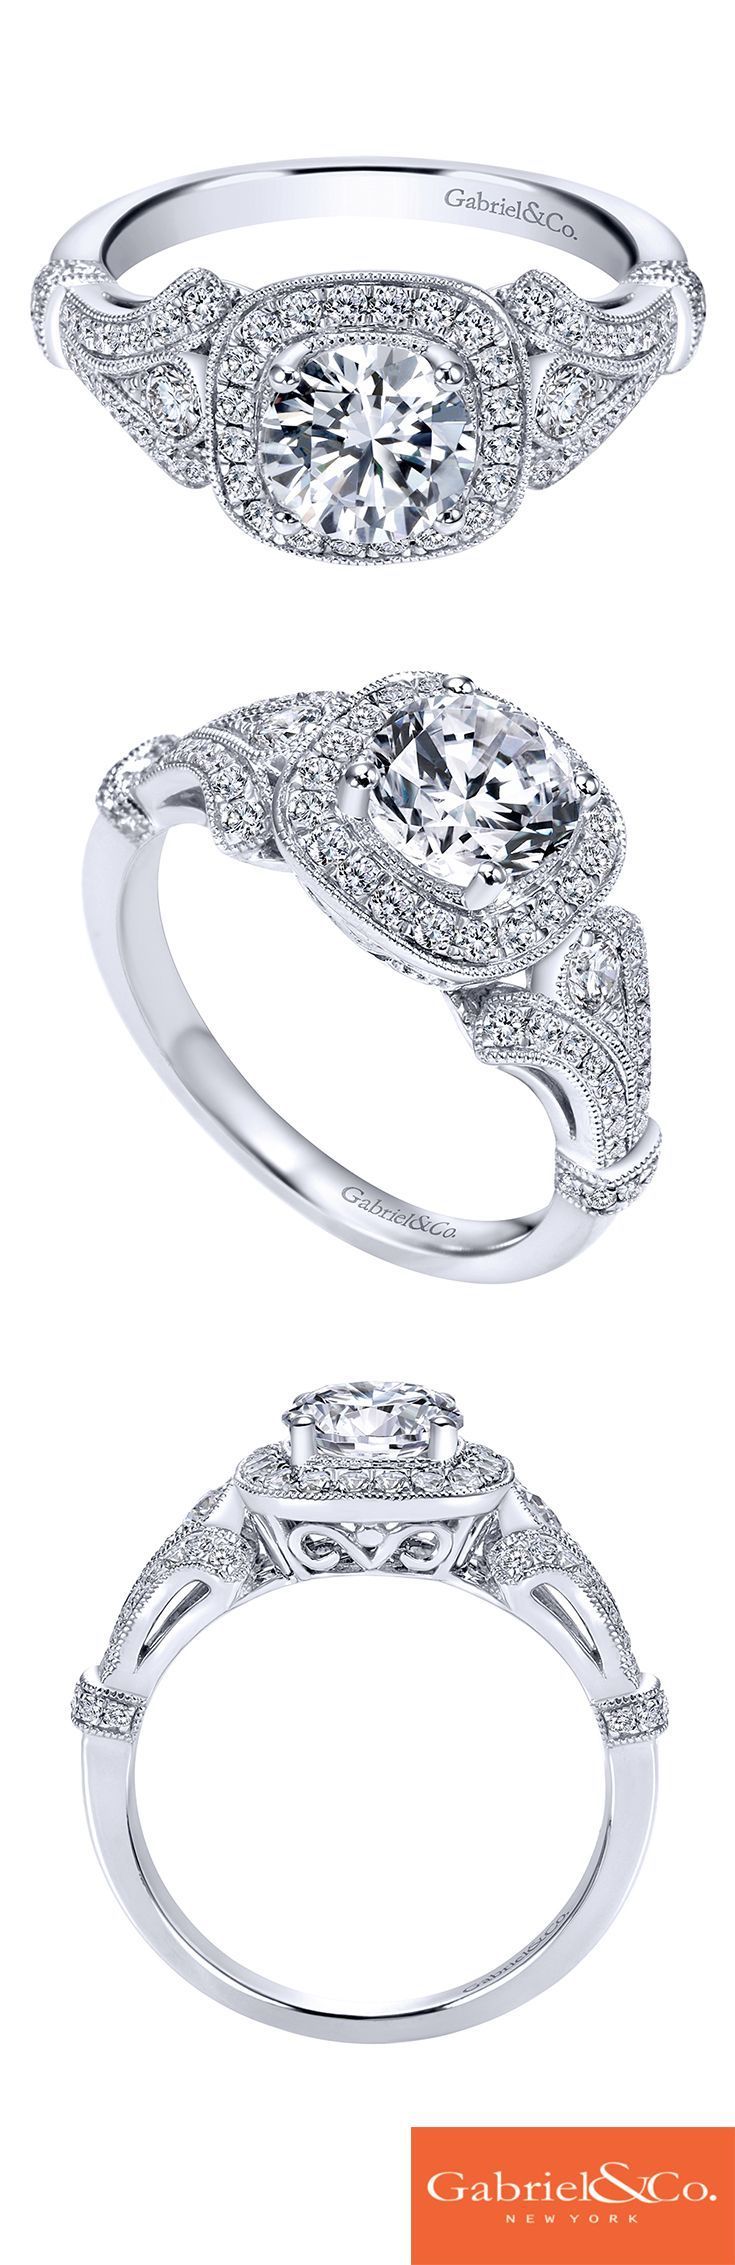 14k White Gold Diamond Halo And Filgree Setting Engagement Ring Intricate Engagement  Ringperfect Engagement Ringhalo Engagement Ringsdream Ringdesign